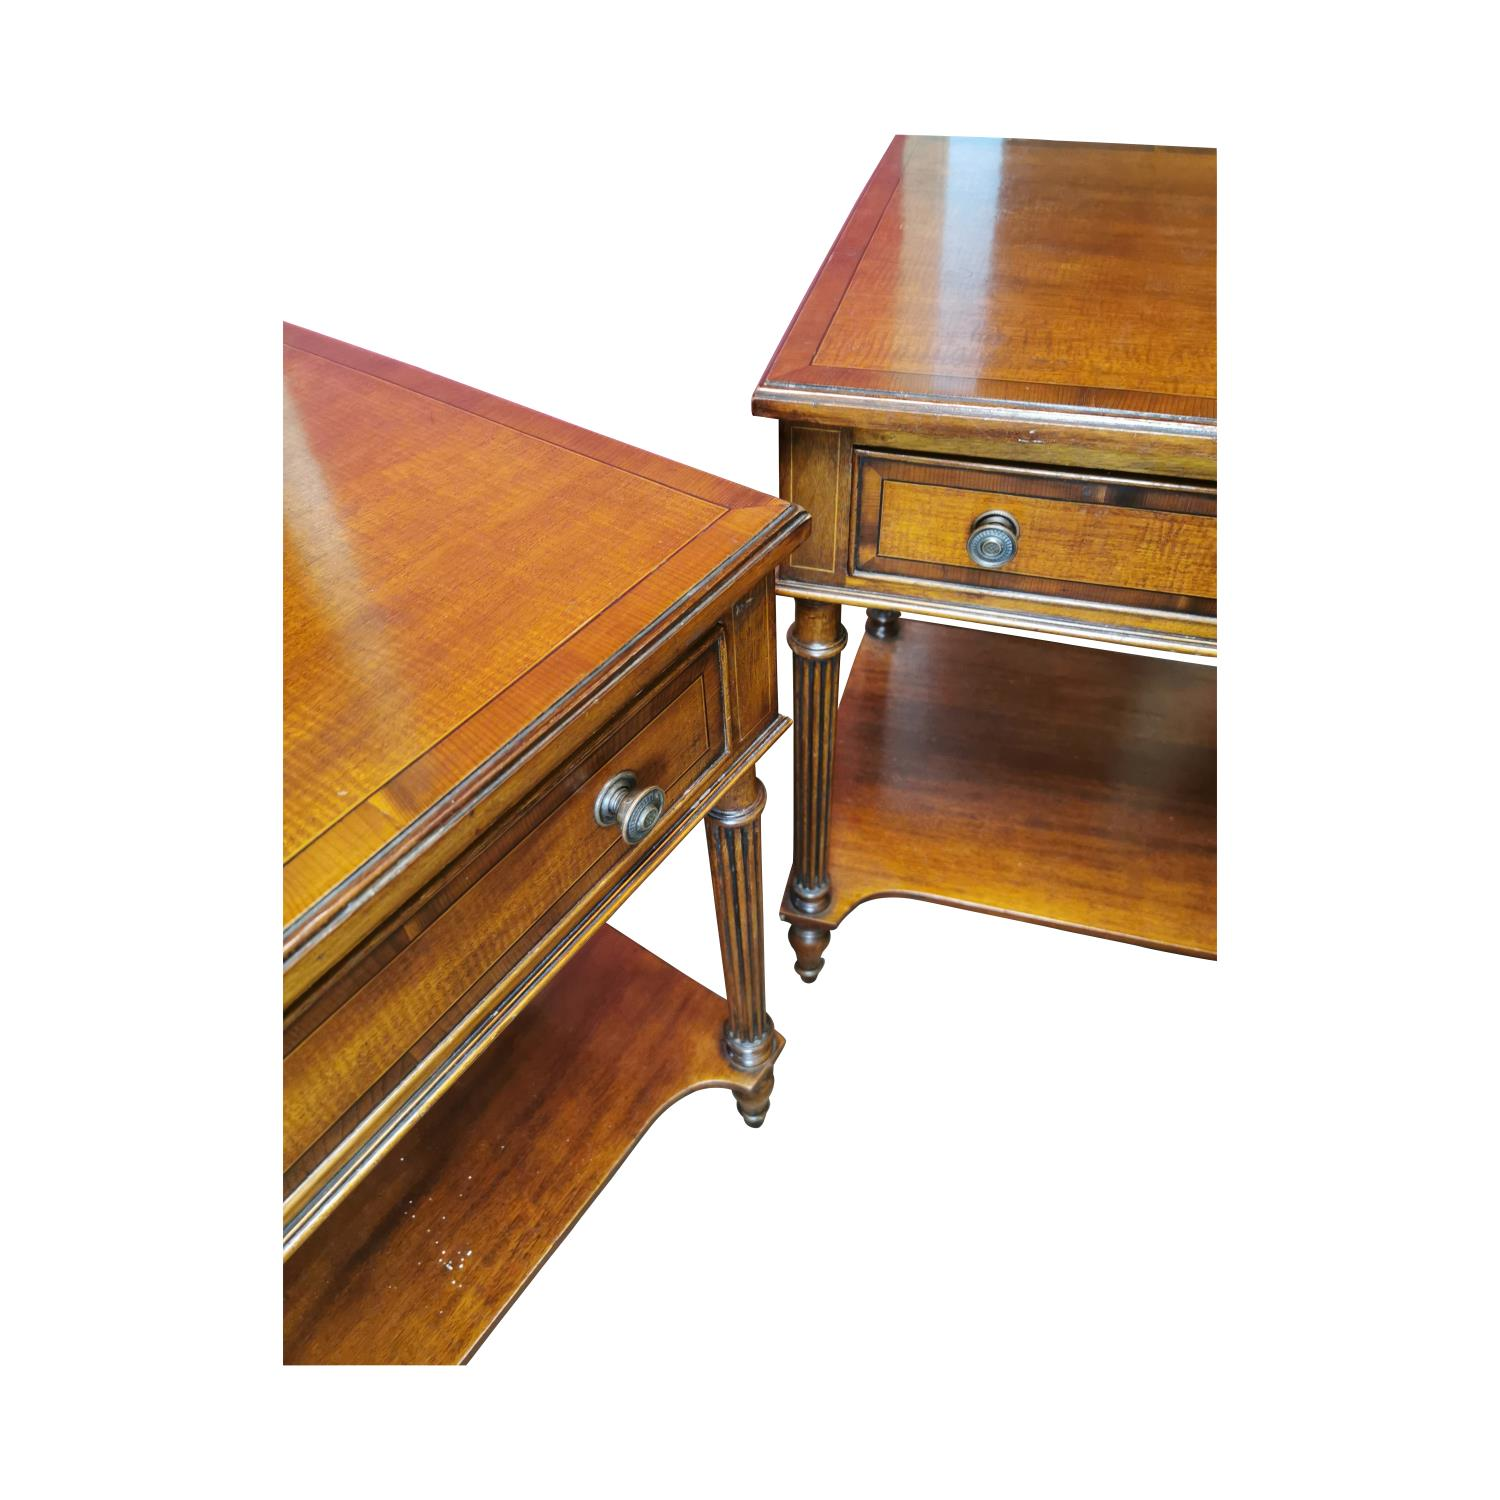 Pair of inlaid mahogany two tier lamp tables - Image 3 of 3